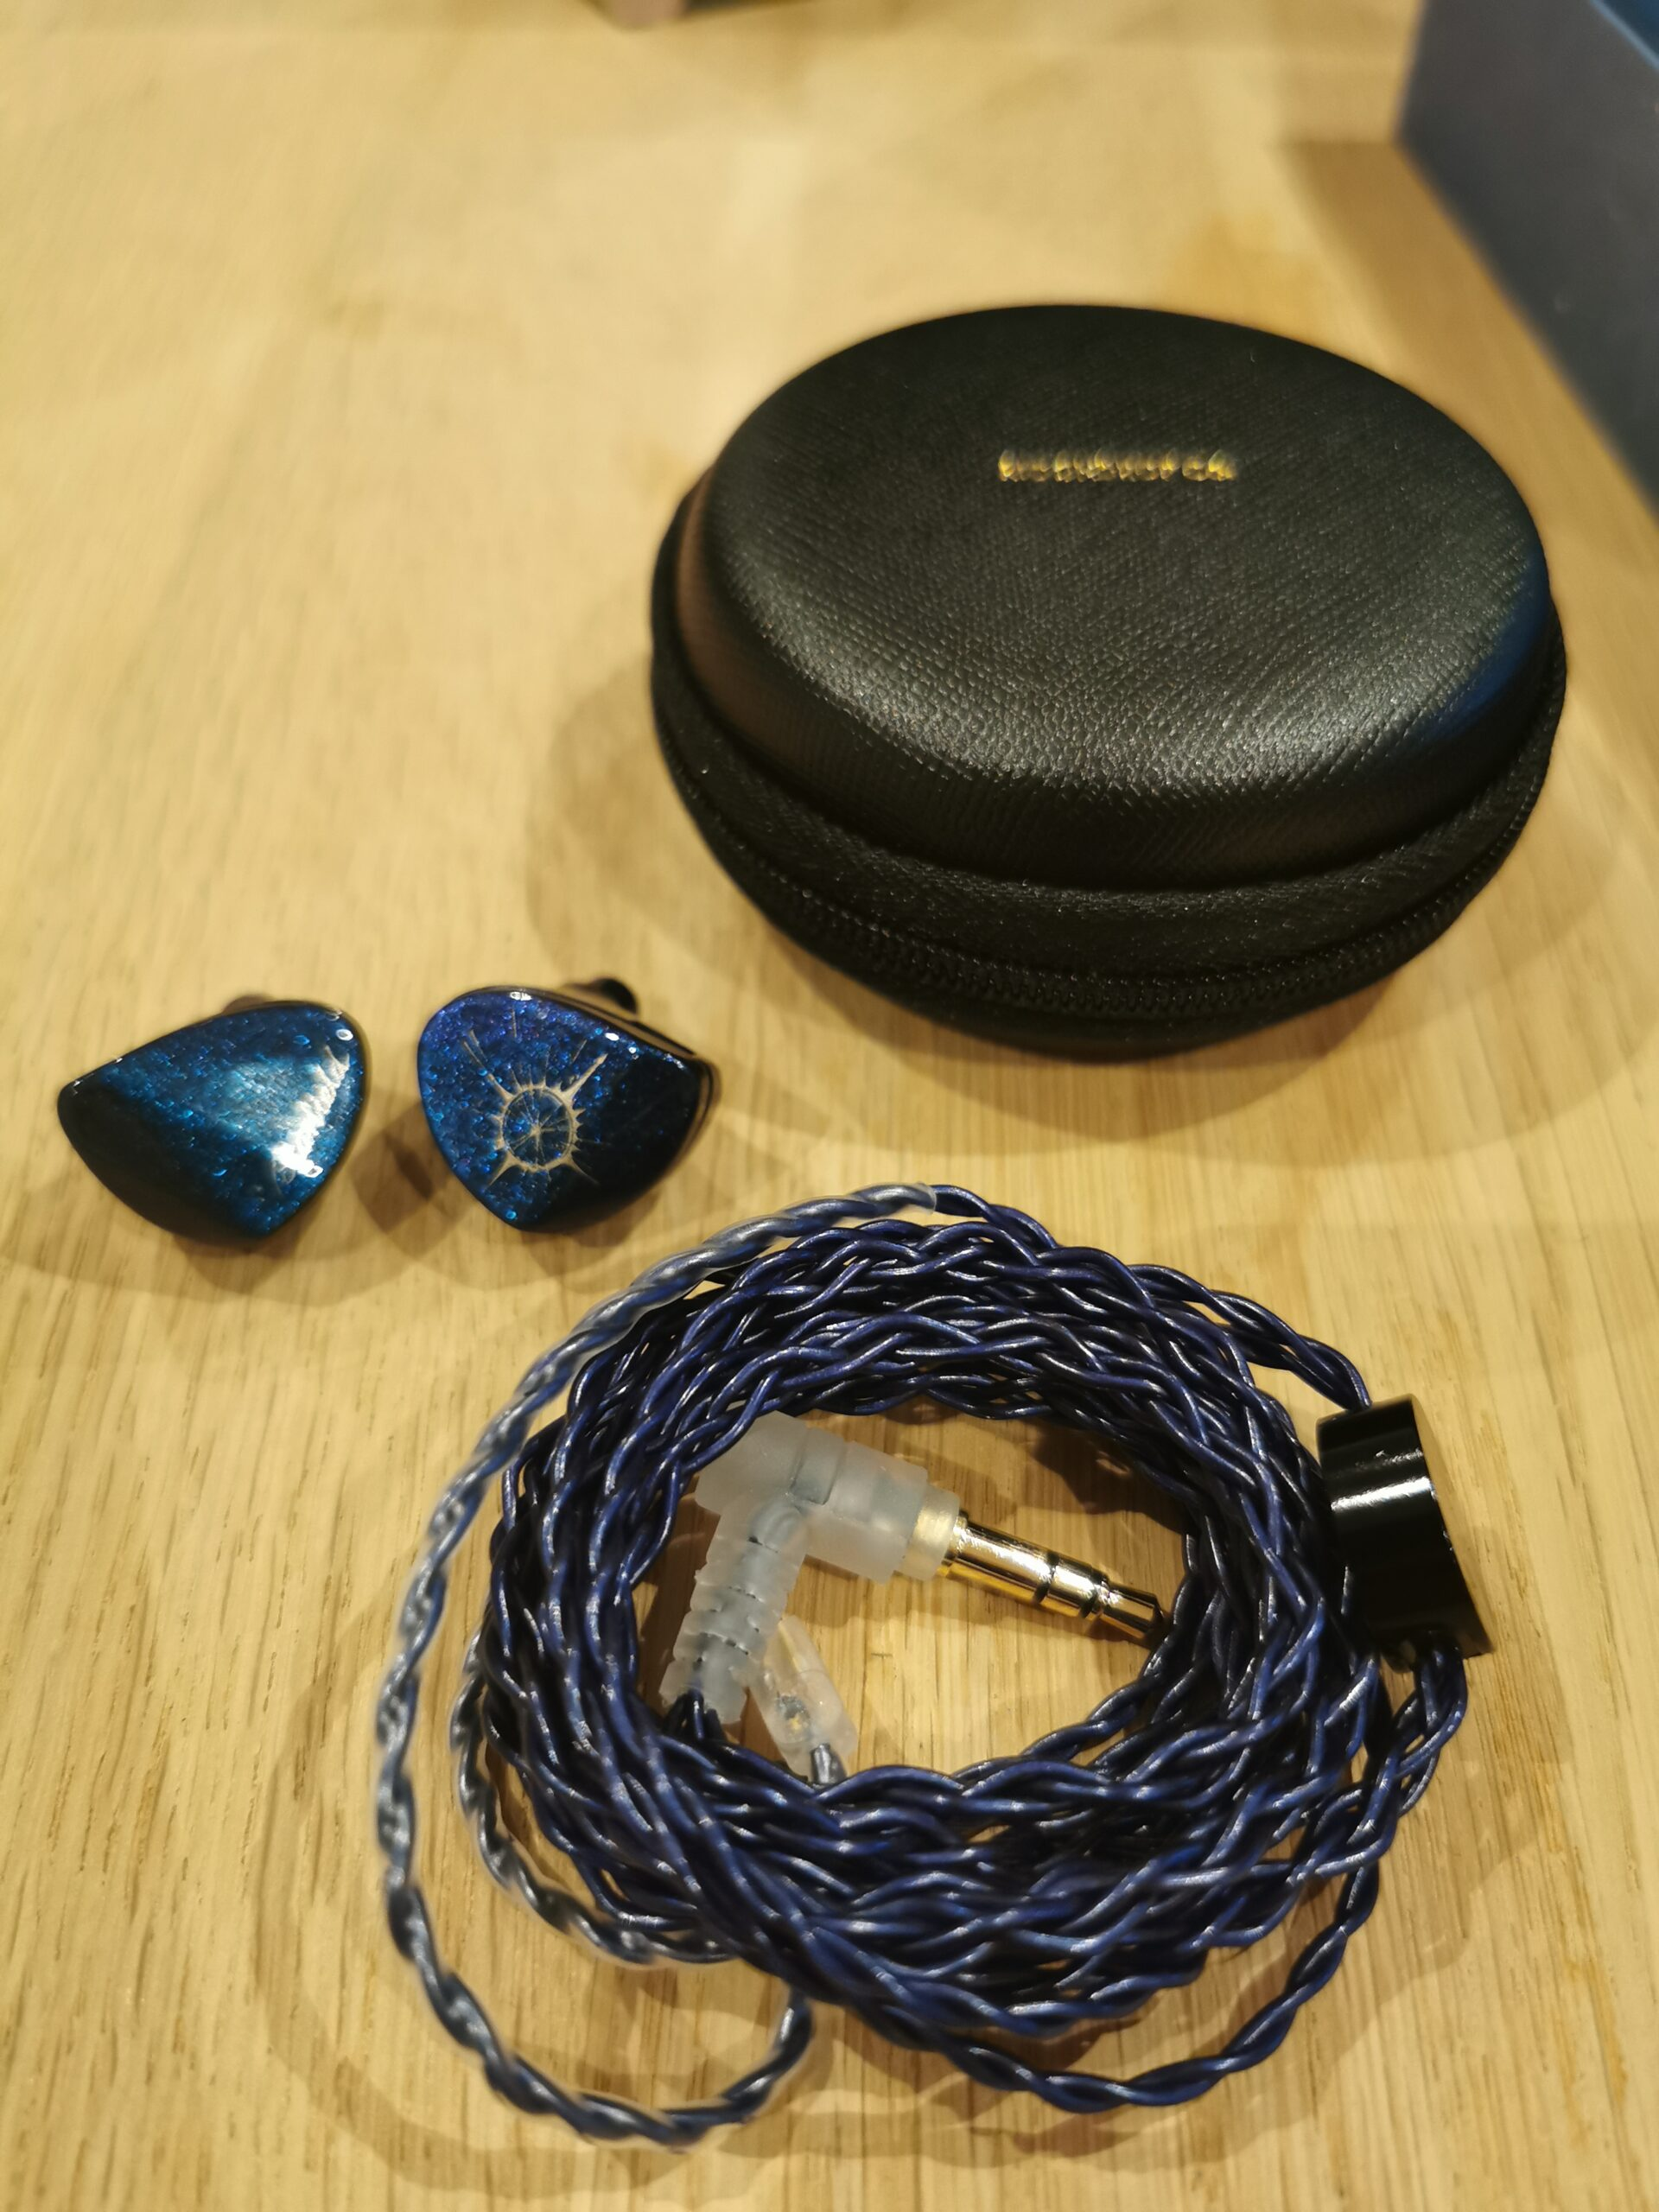 Moondrop Starfield in ear høretelefoner, kabel og etui